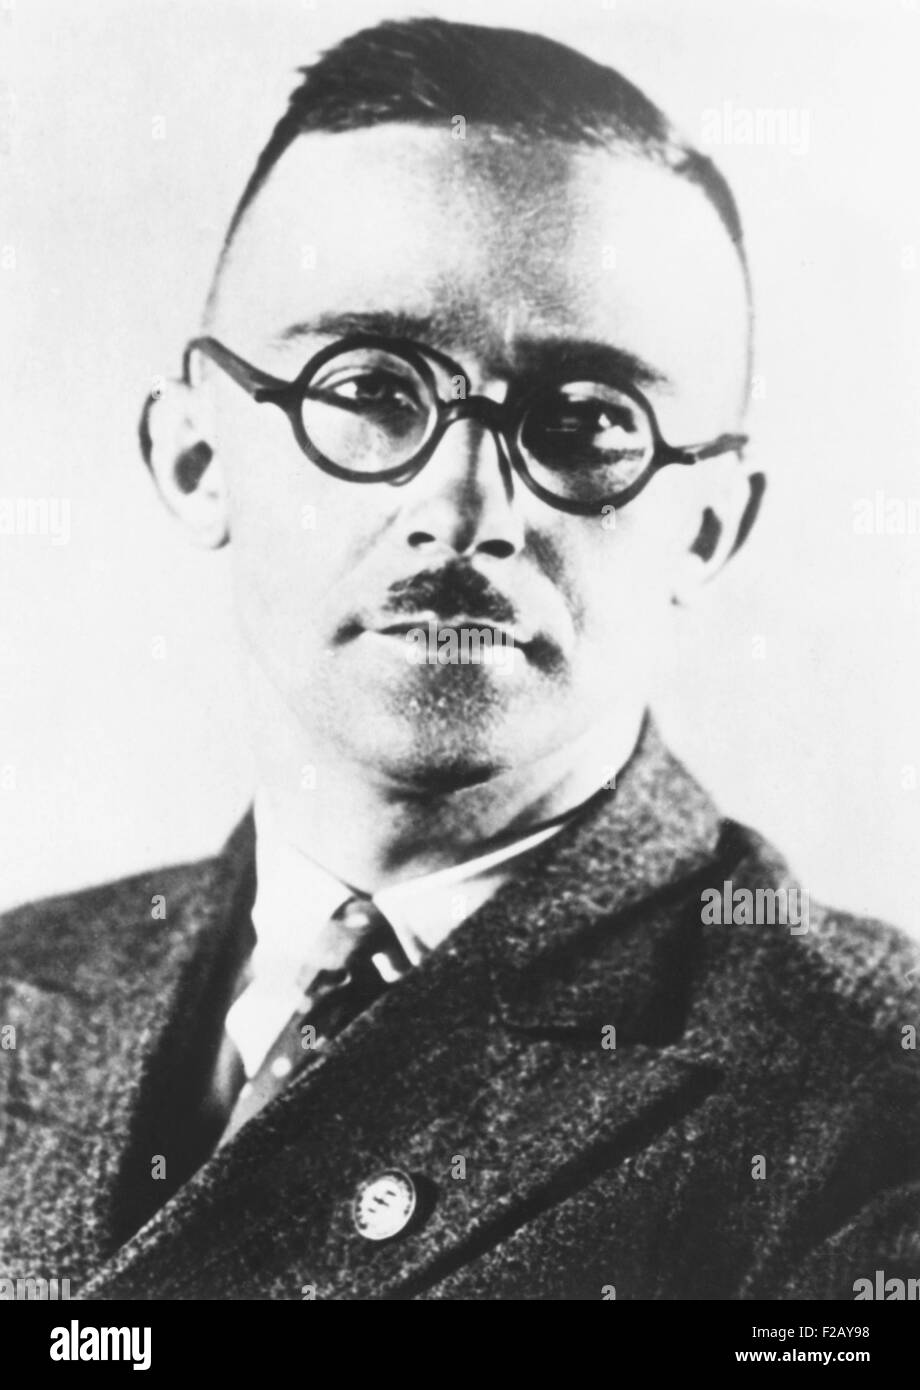 Heinrich Himmler, head of the Nazi's Black Shirt troopers or Schutzstaffel (SS) from 1929-1945. The SS began - Stock Image